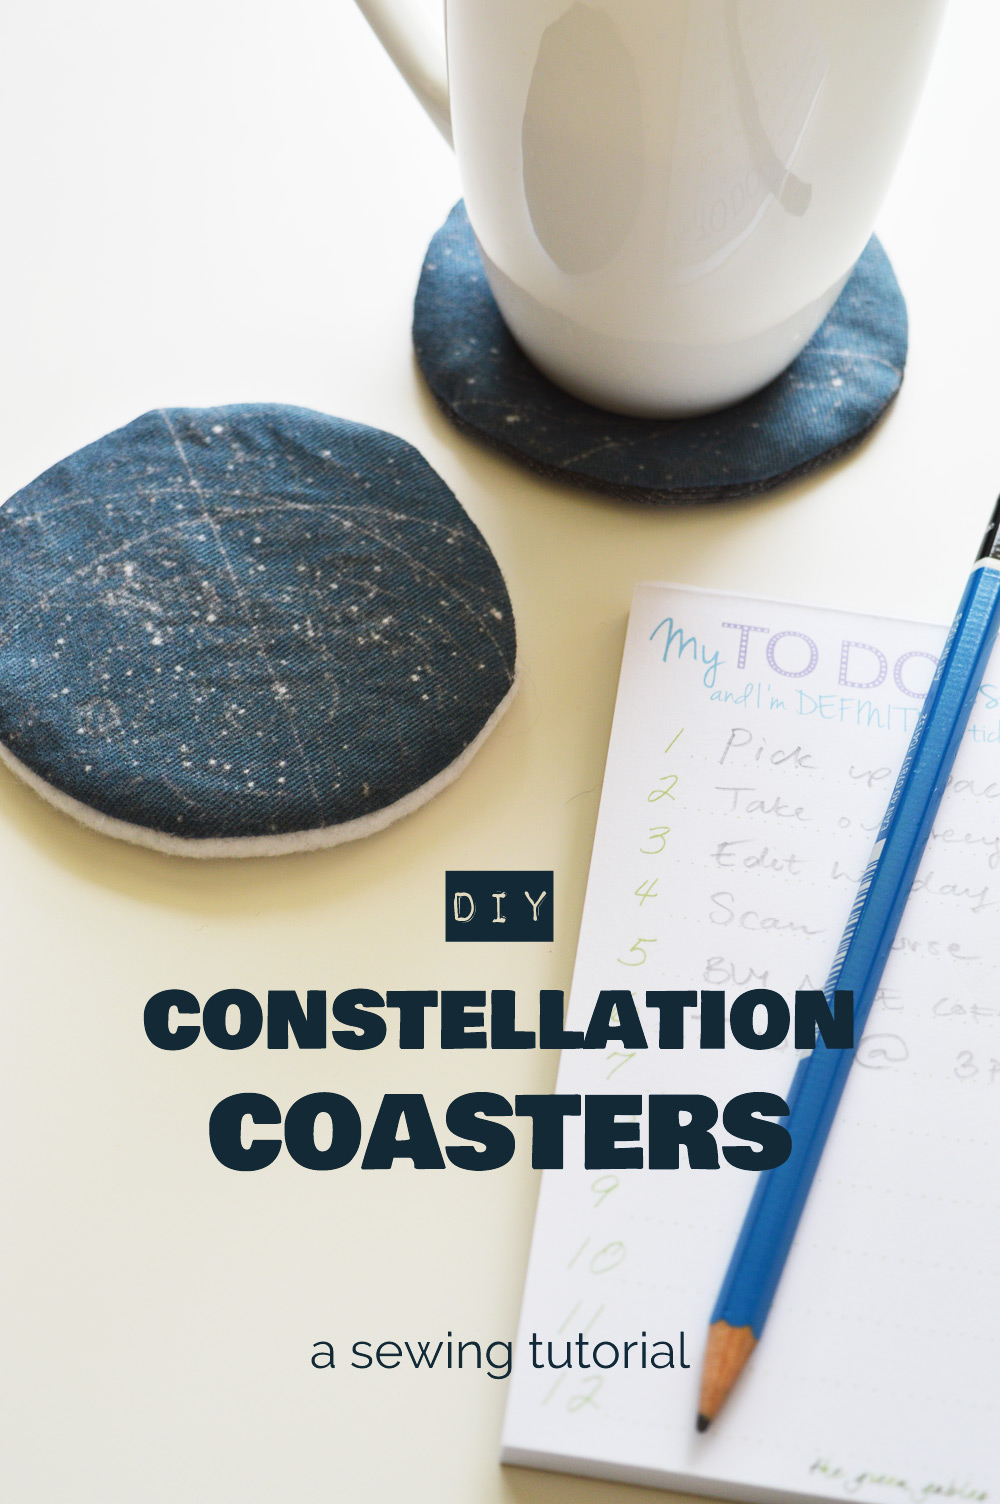 DIY constellation coasters tutorial